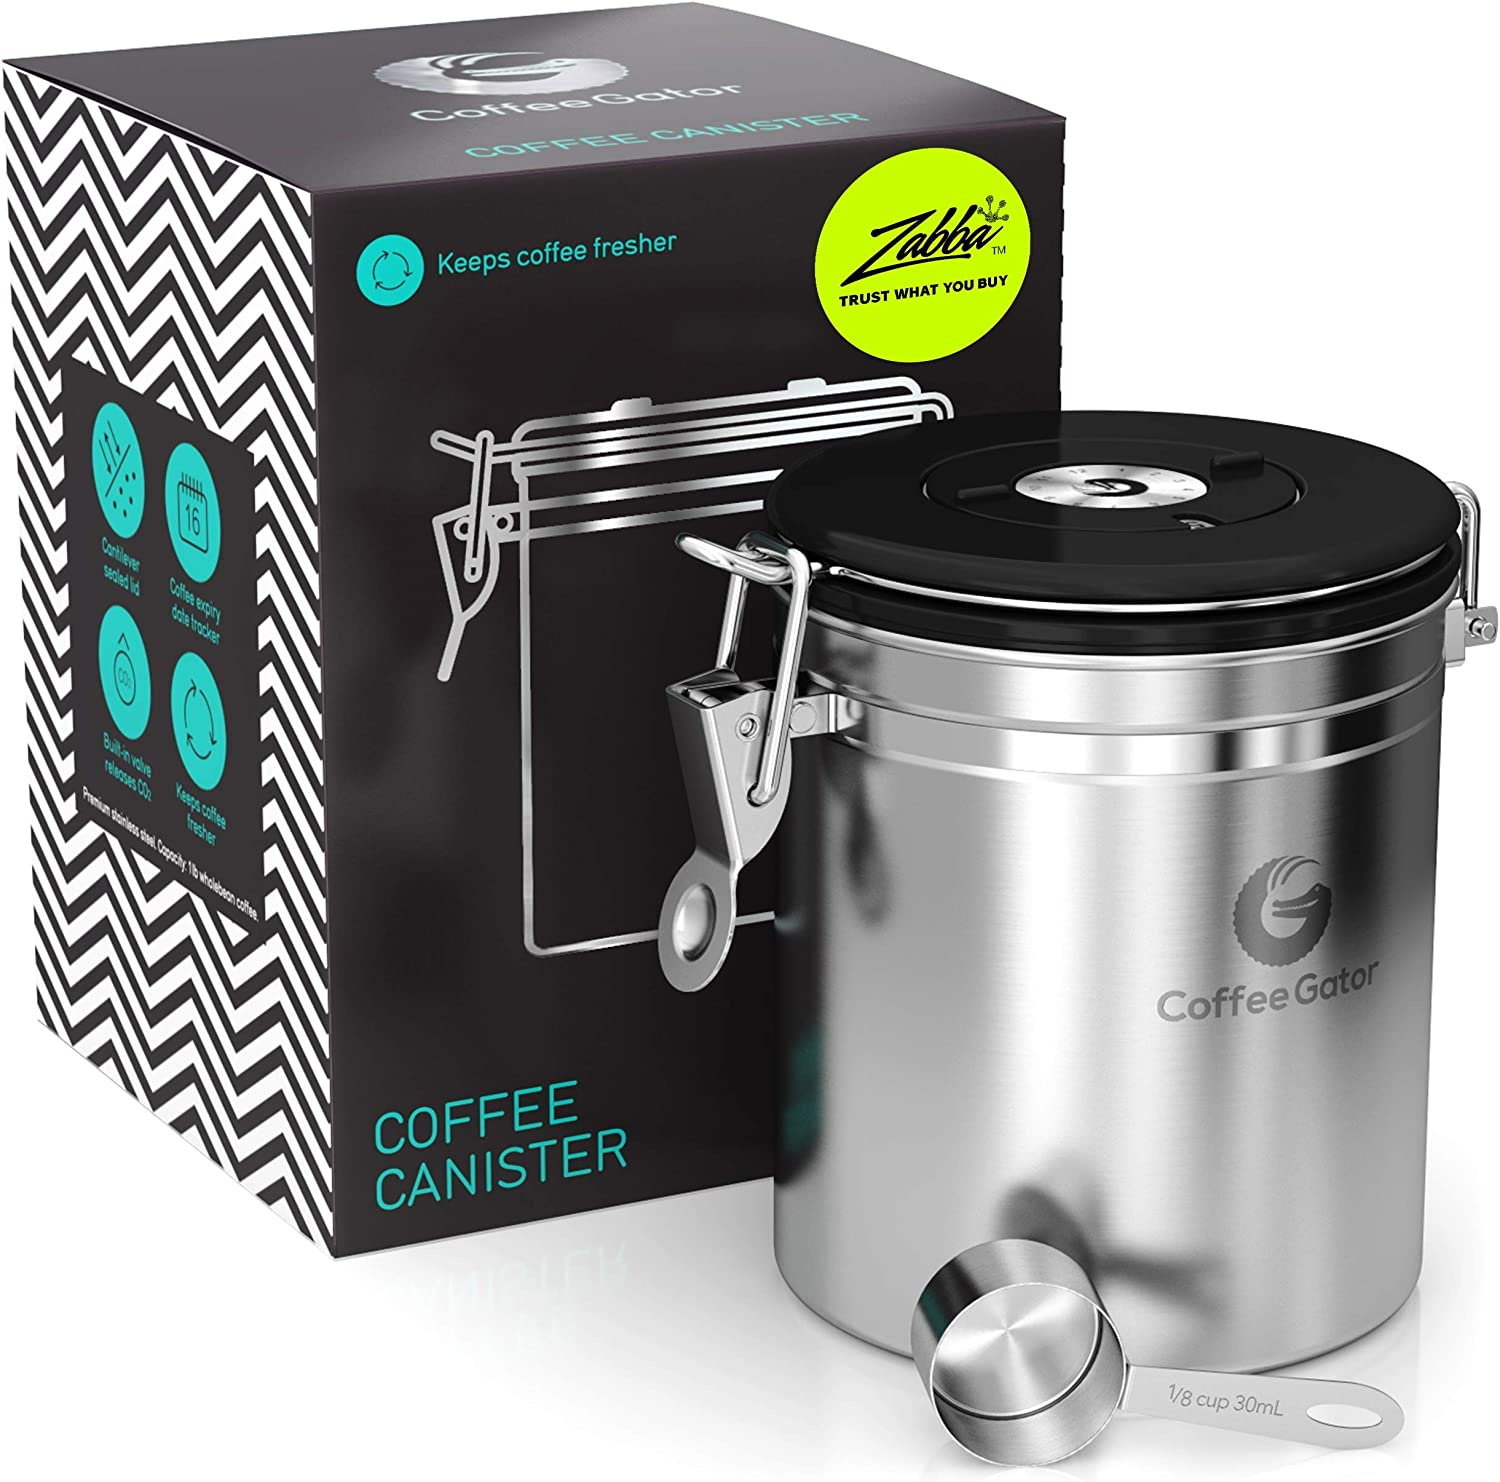 Silver CO2-Release Valve W// Scoop Coffee Gator Coffee Canister- Stainless Steel Coffee Storage /& Containers- Airtight Canisters Keep Beans Fresh- Date-Tracker Jar Medium